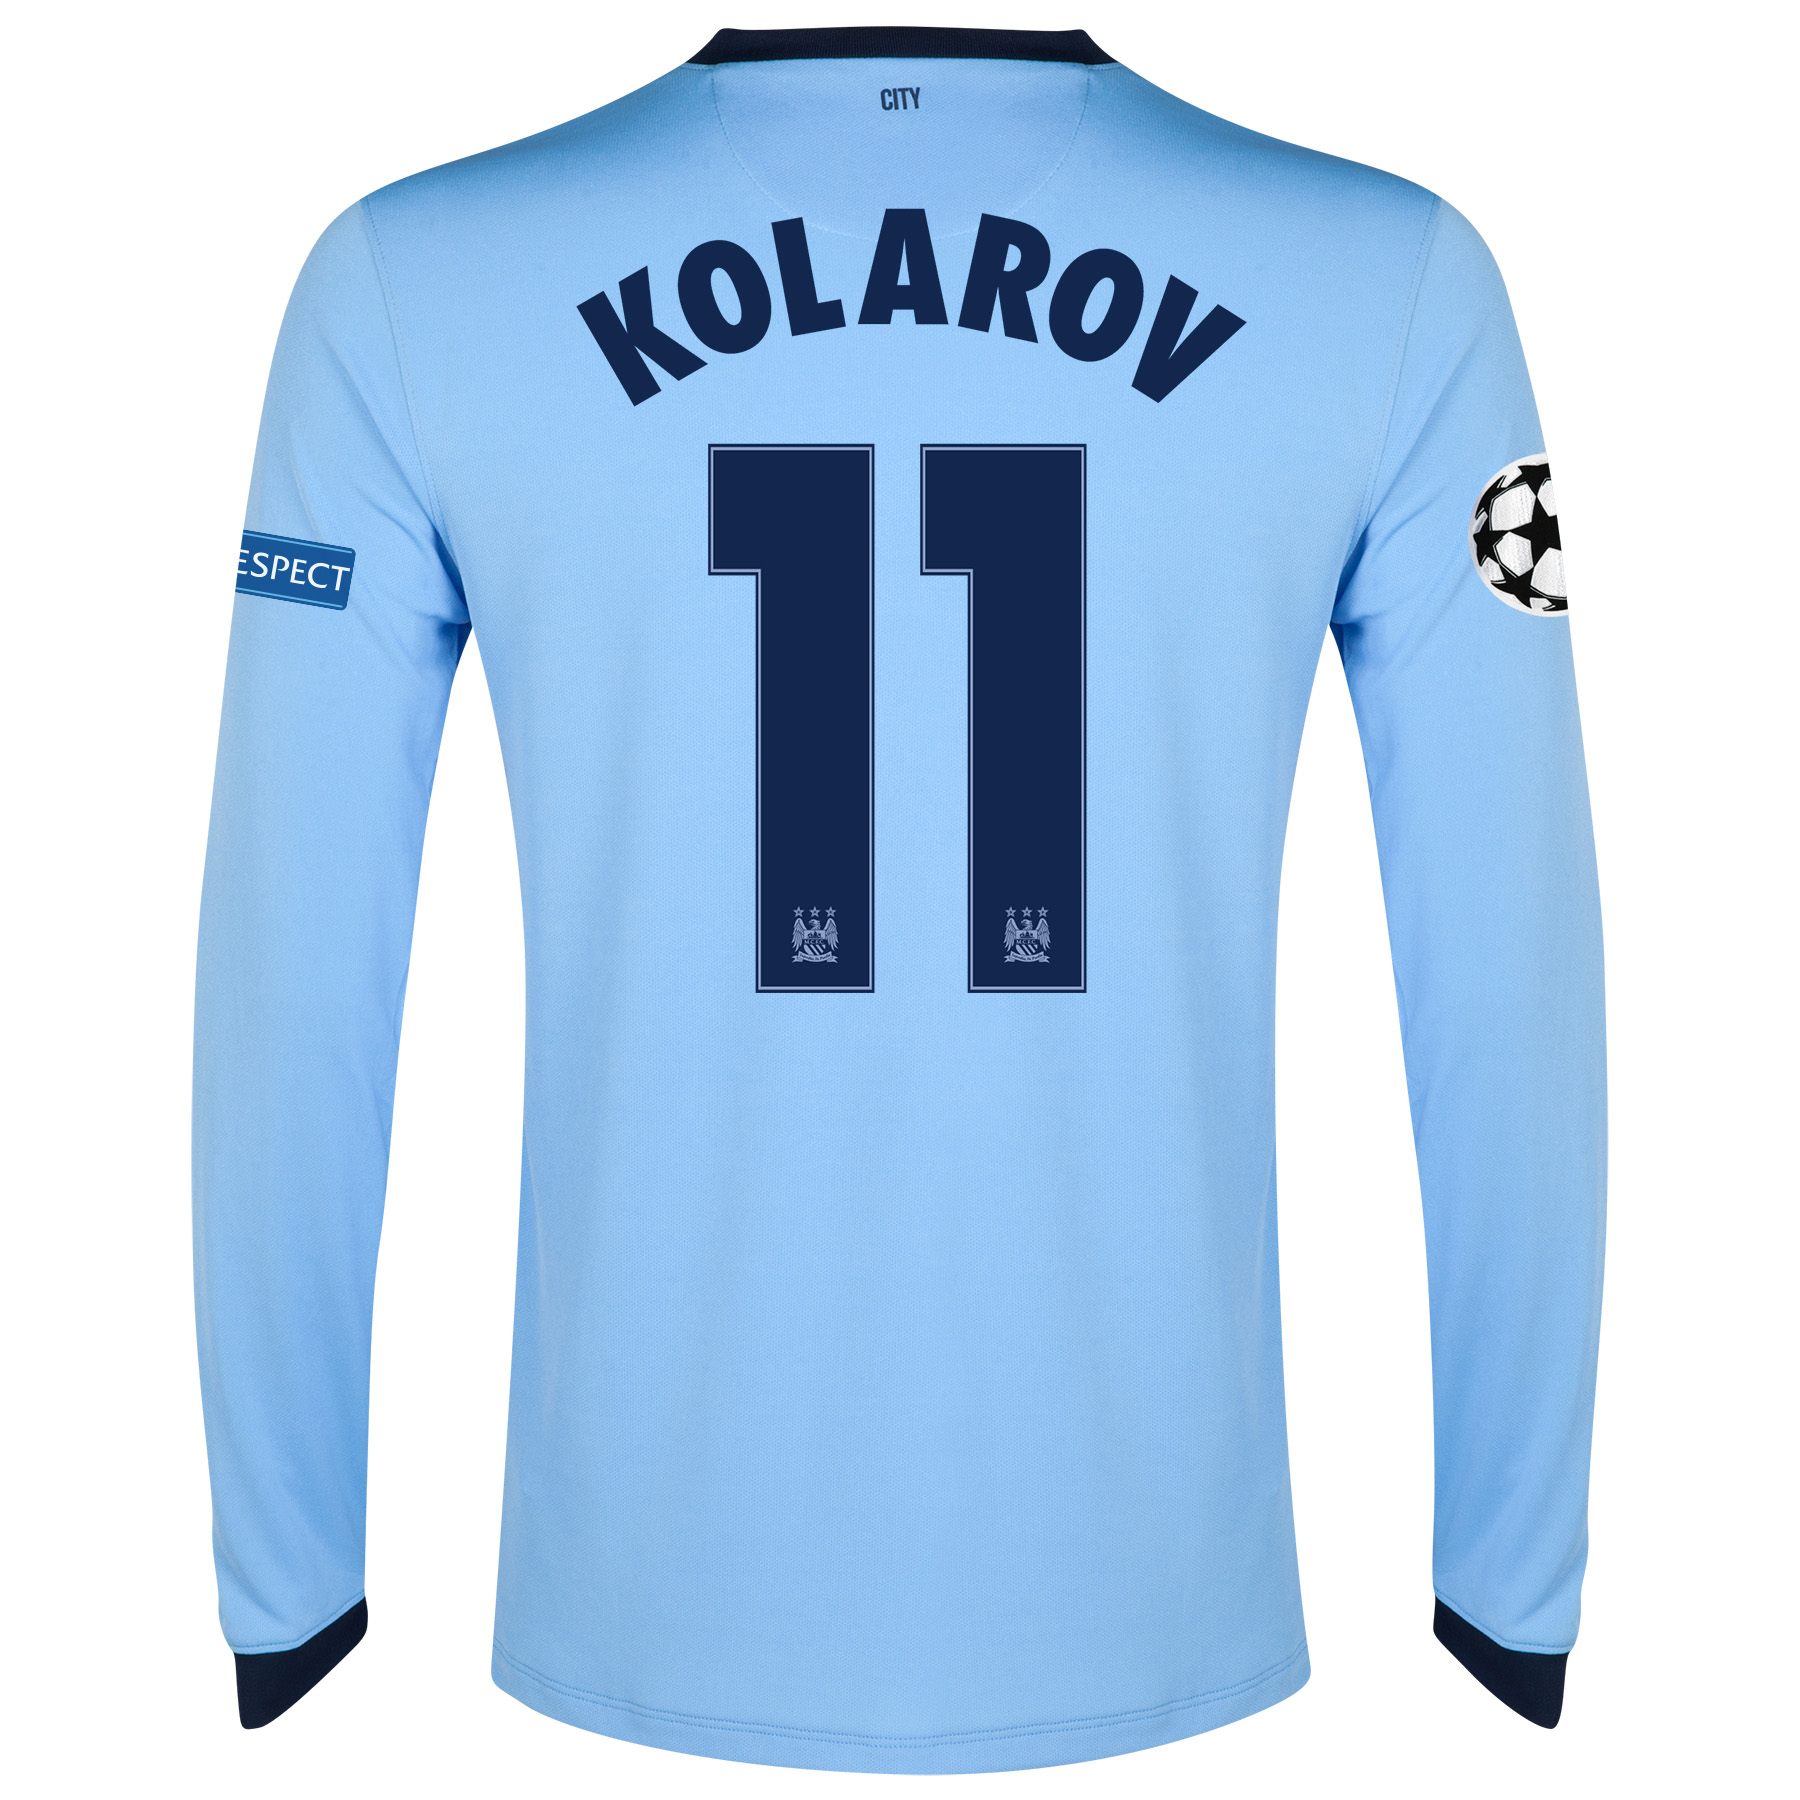 Manchester City UEFA Champions League Home Shirt 2014/15 - Long Sleeve Sky Blue with Kolarov 11 printing